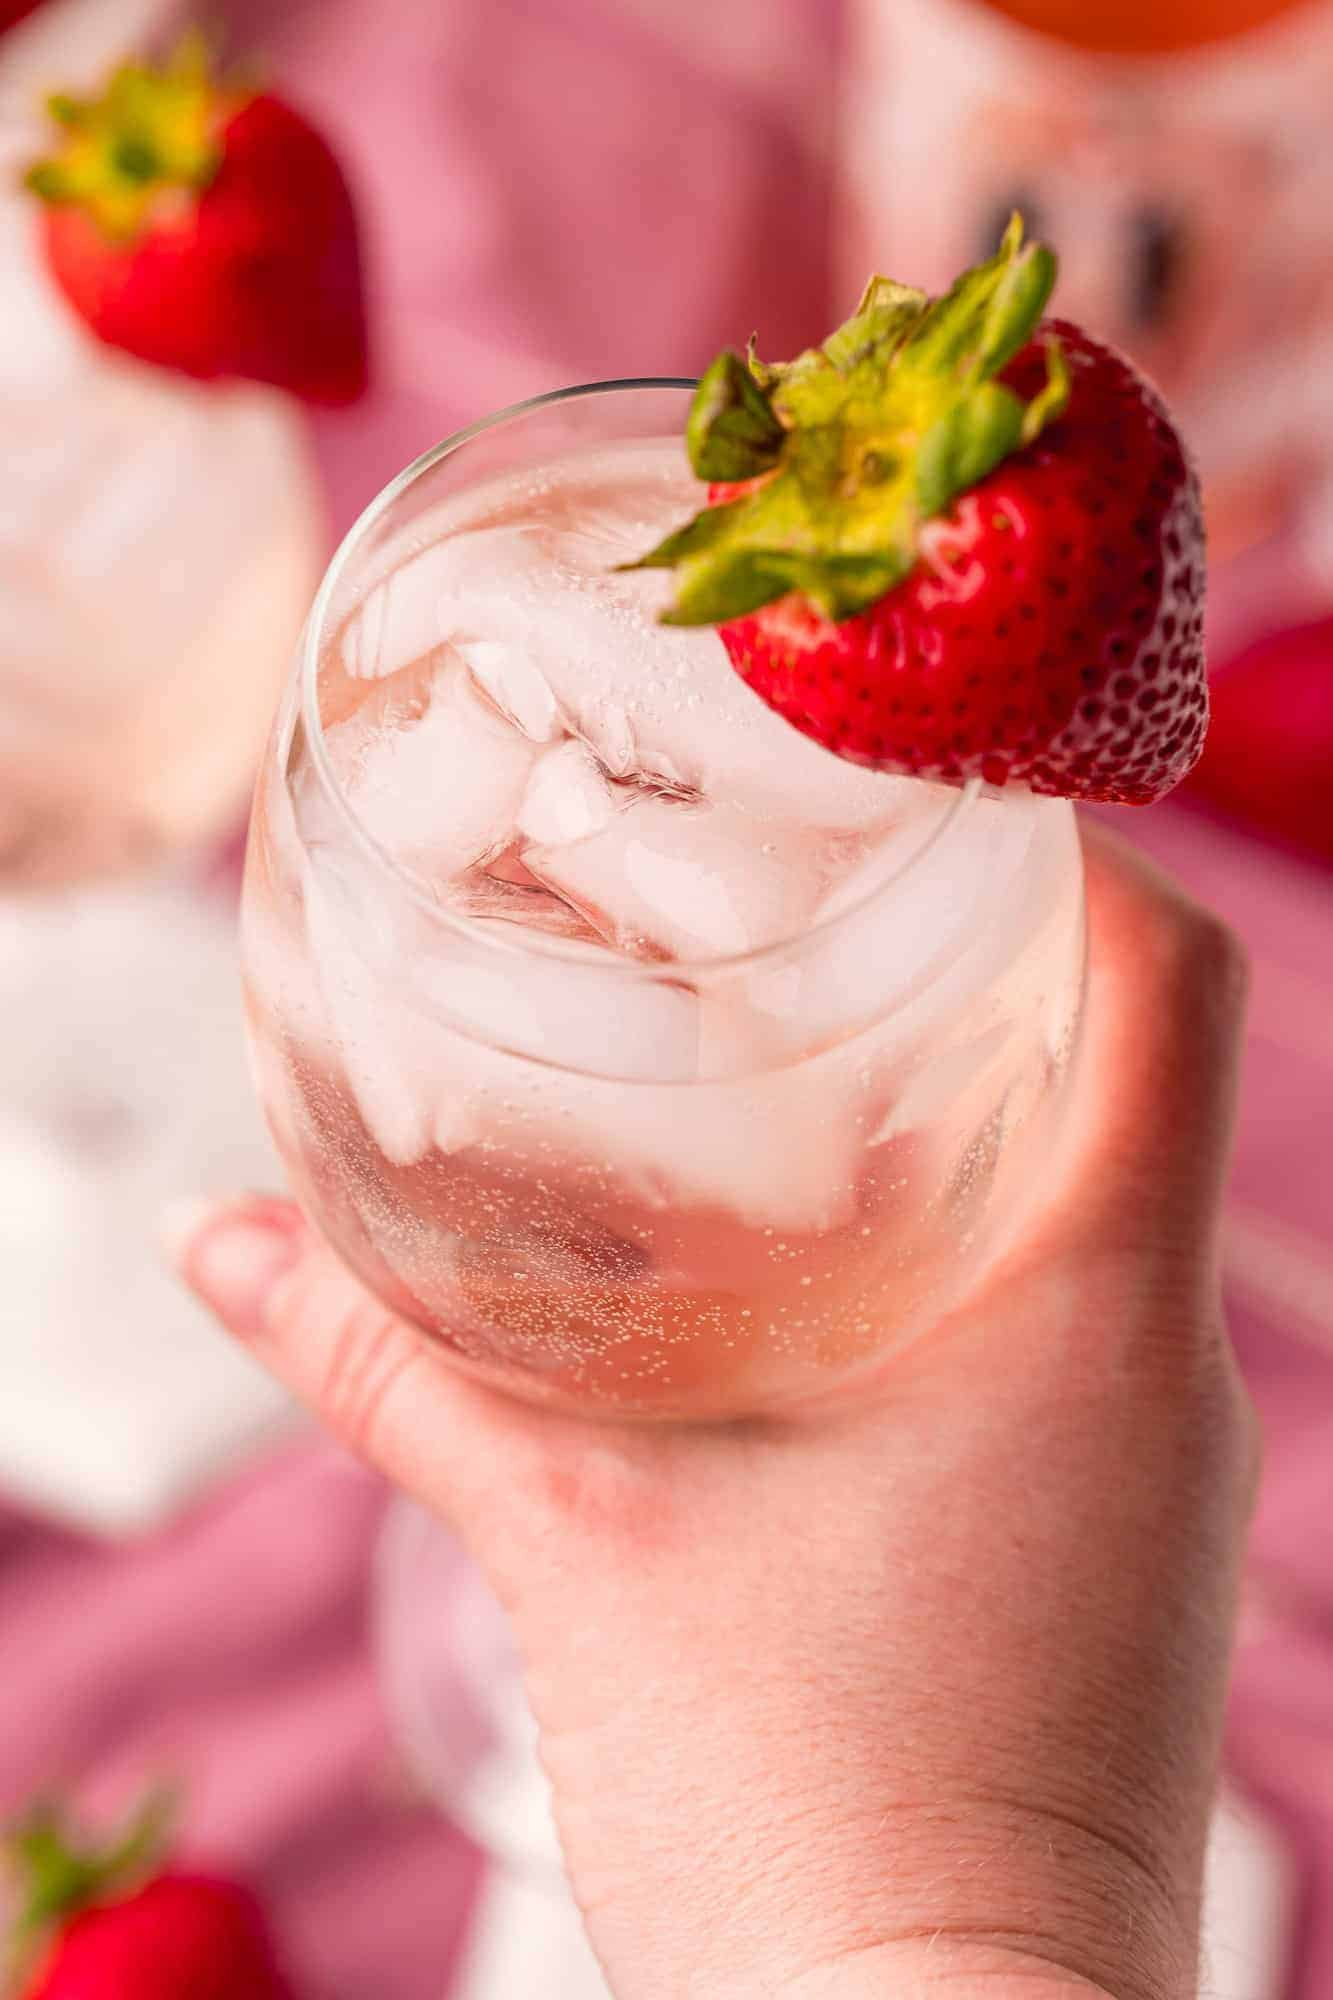 Iced cocktail with strawberry garnish in a person's hand.